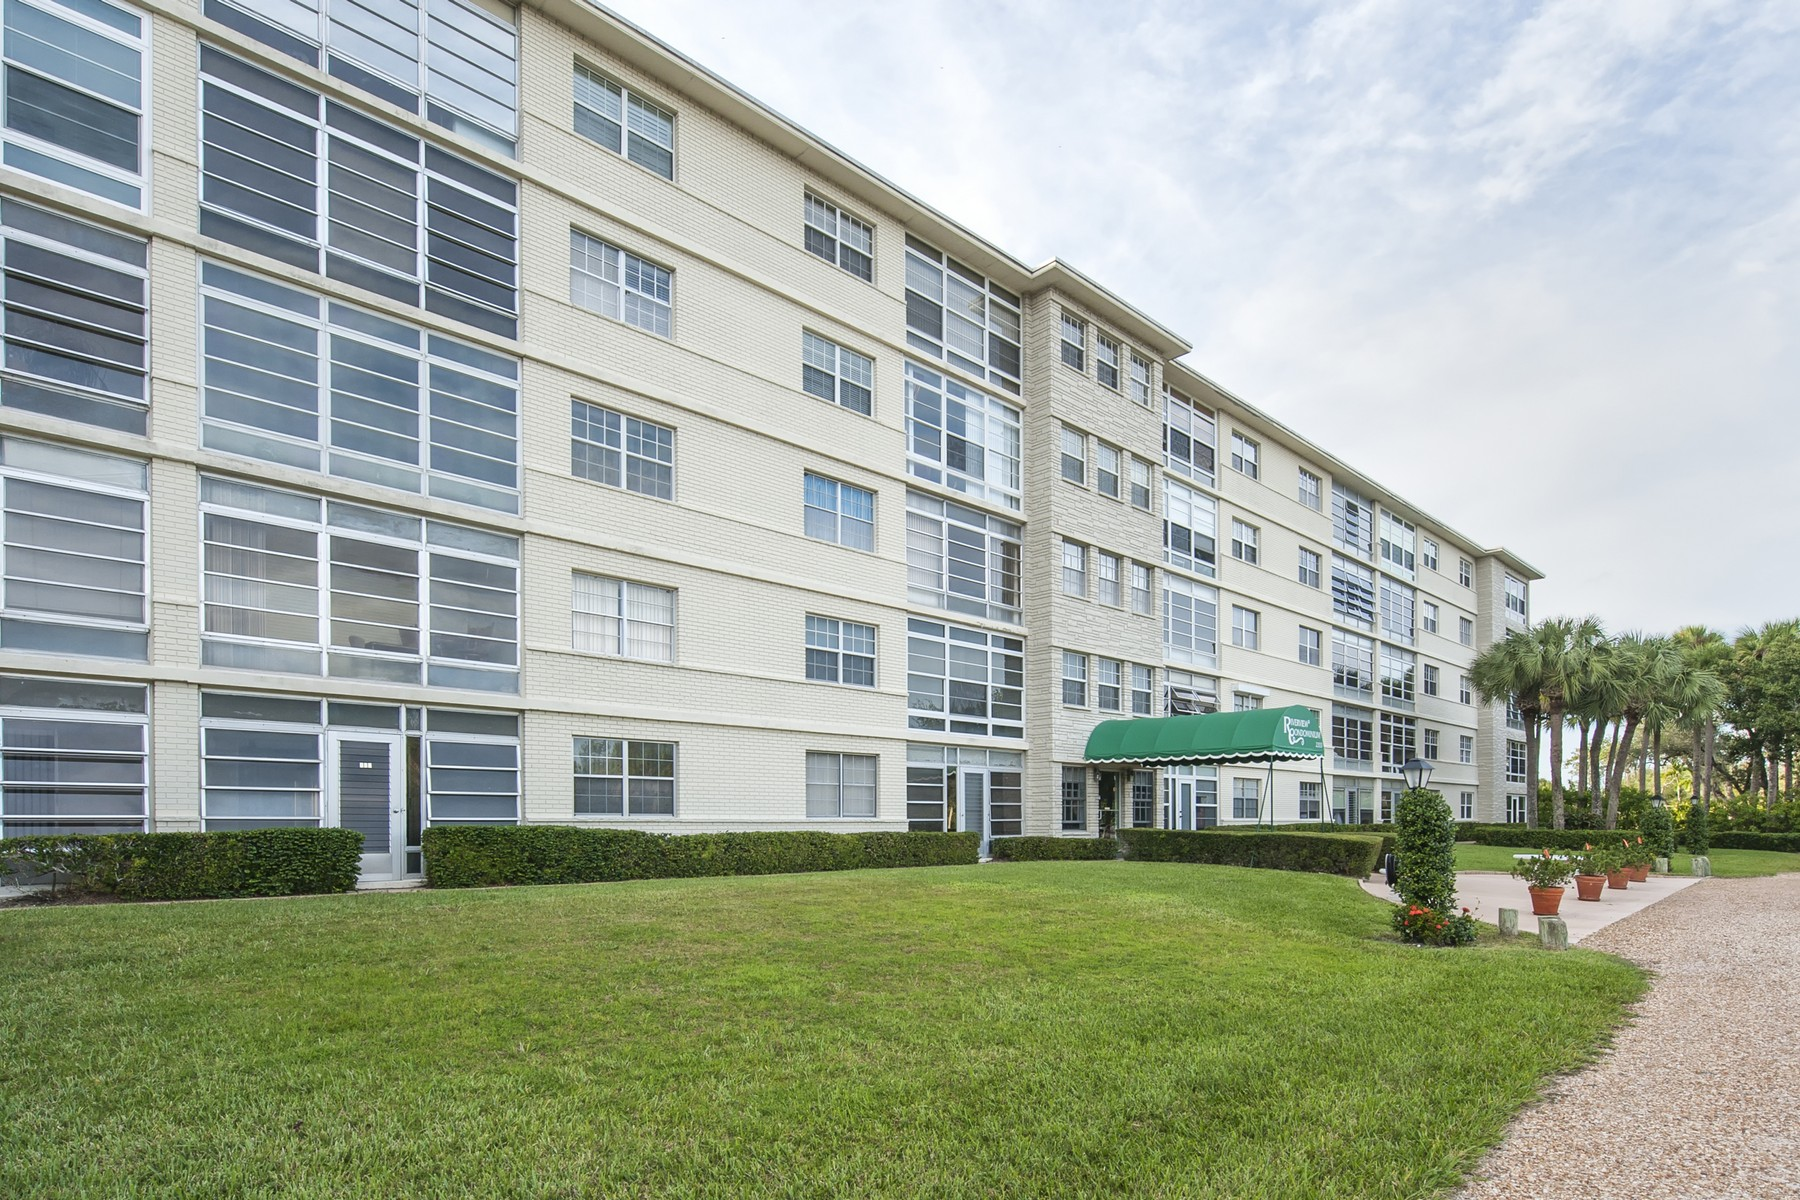 Condomínio para Venda às Great River View Condo 2333 Indian River Blvd #402 Vero Beach, Florida, 32960 Estados Unidos